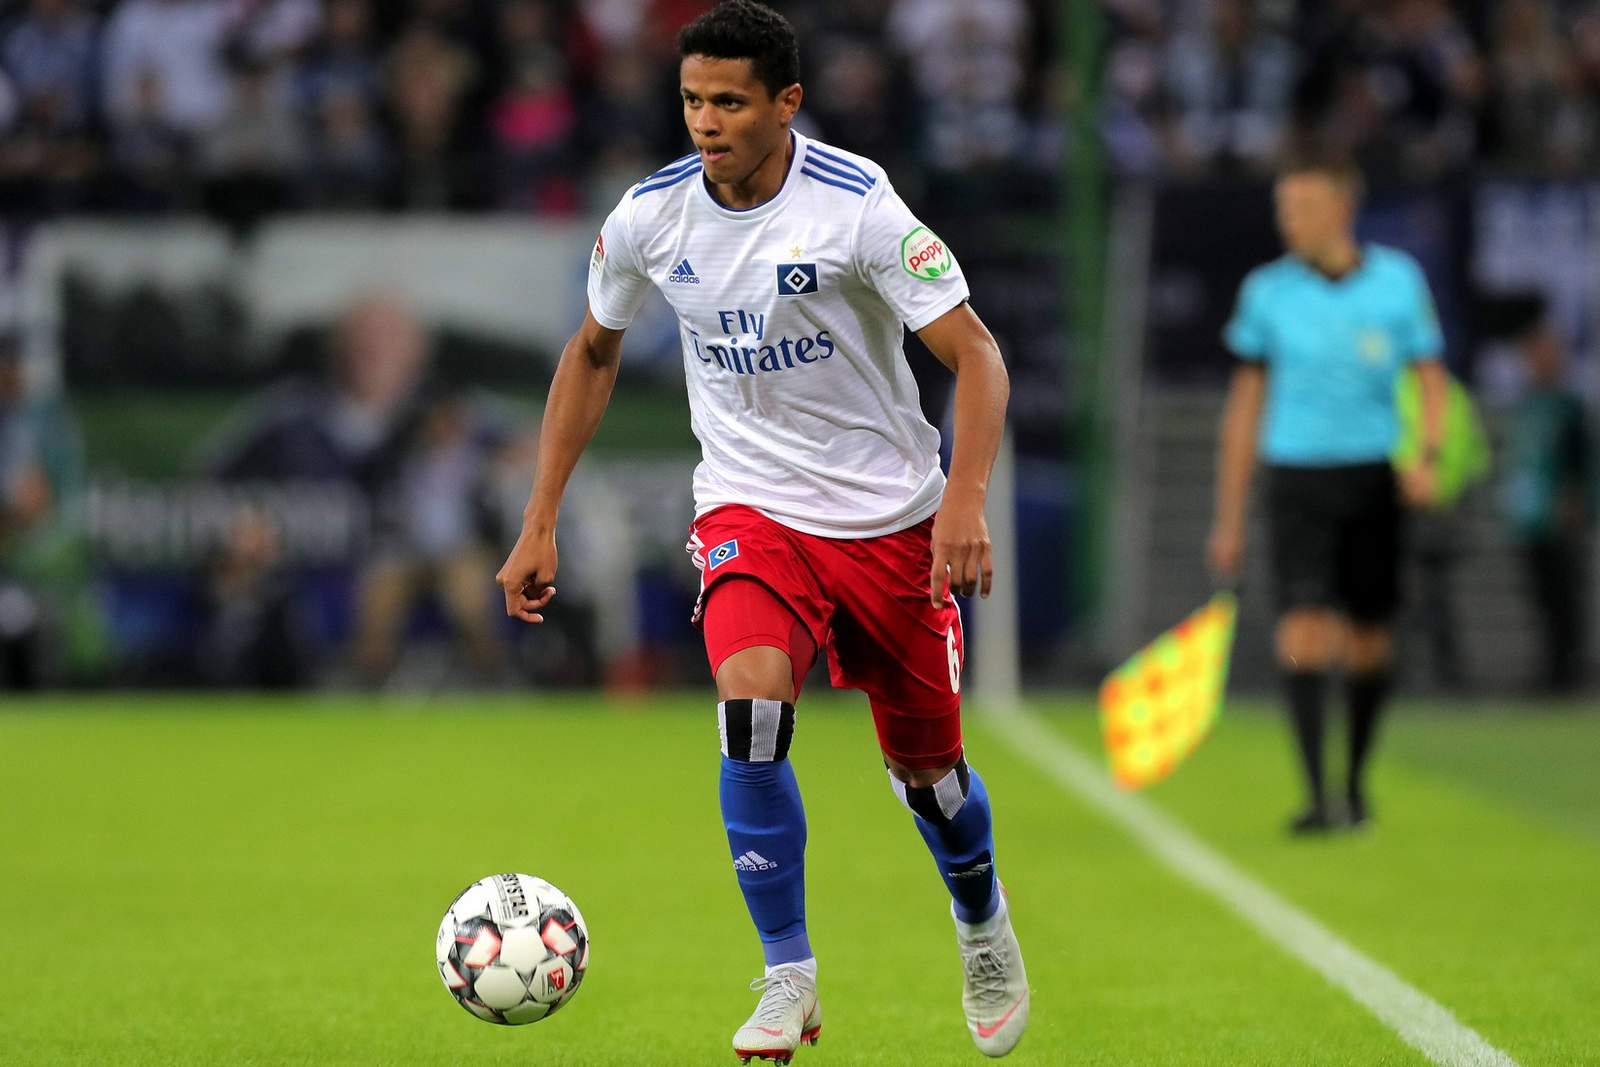 Douglas Santos im HSV-Dress.